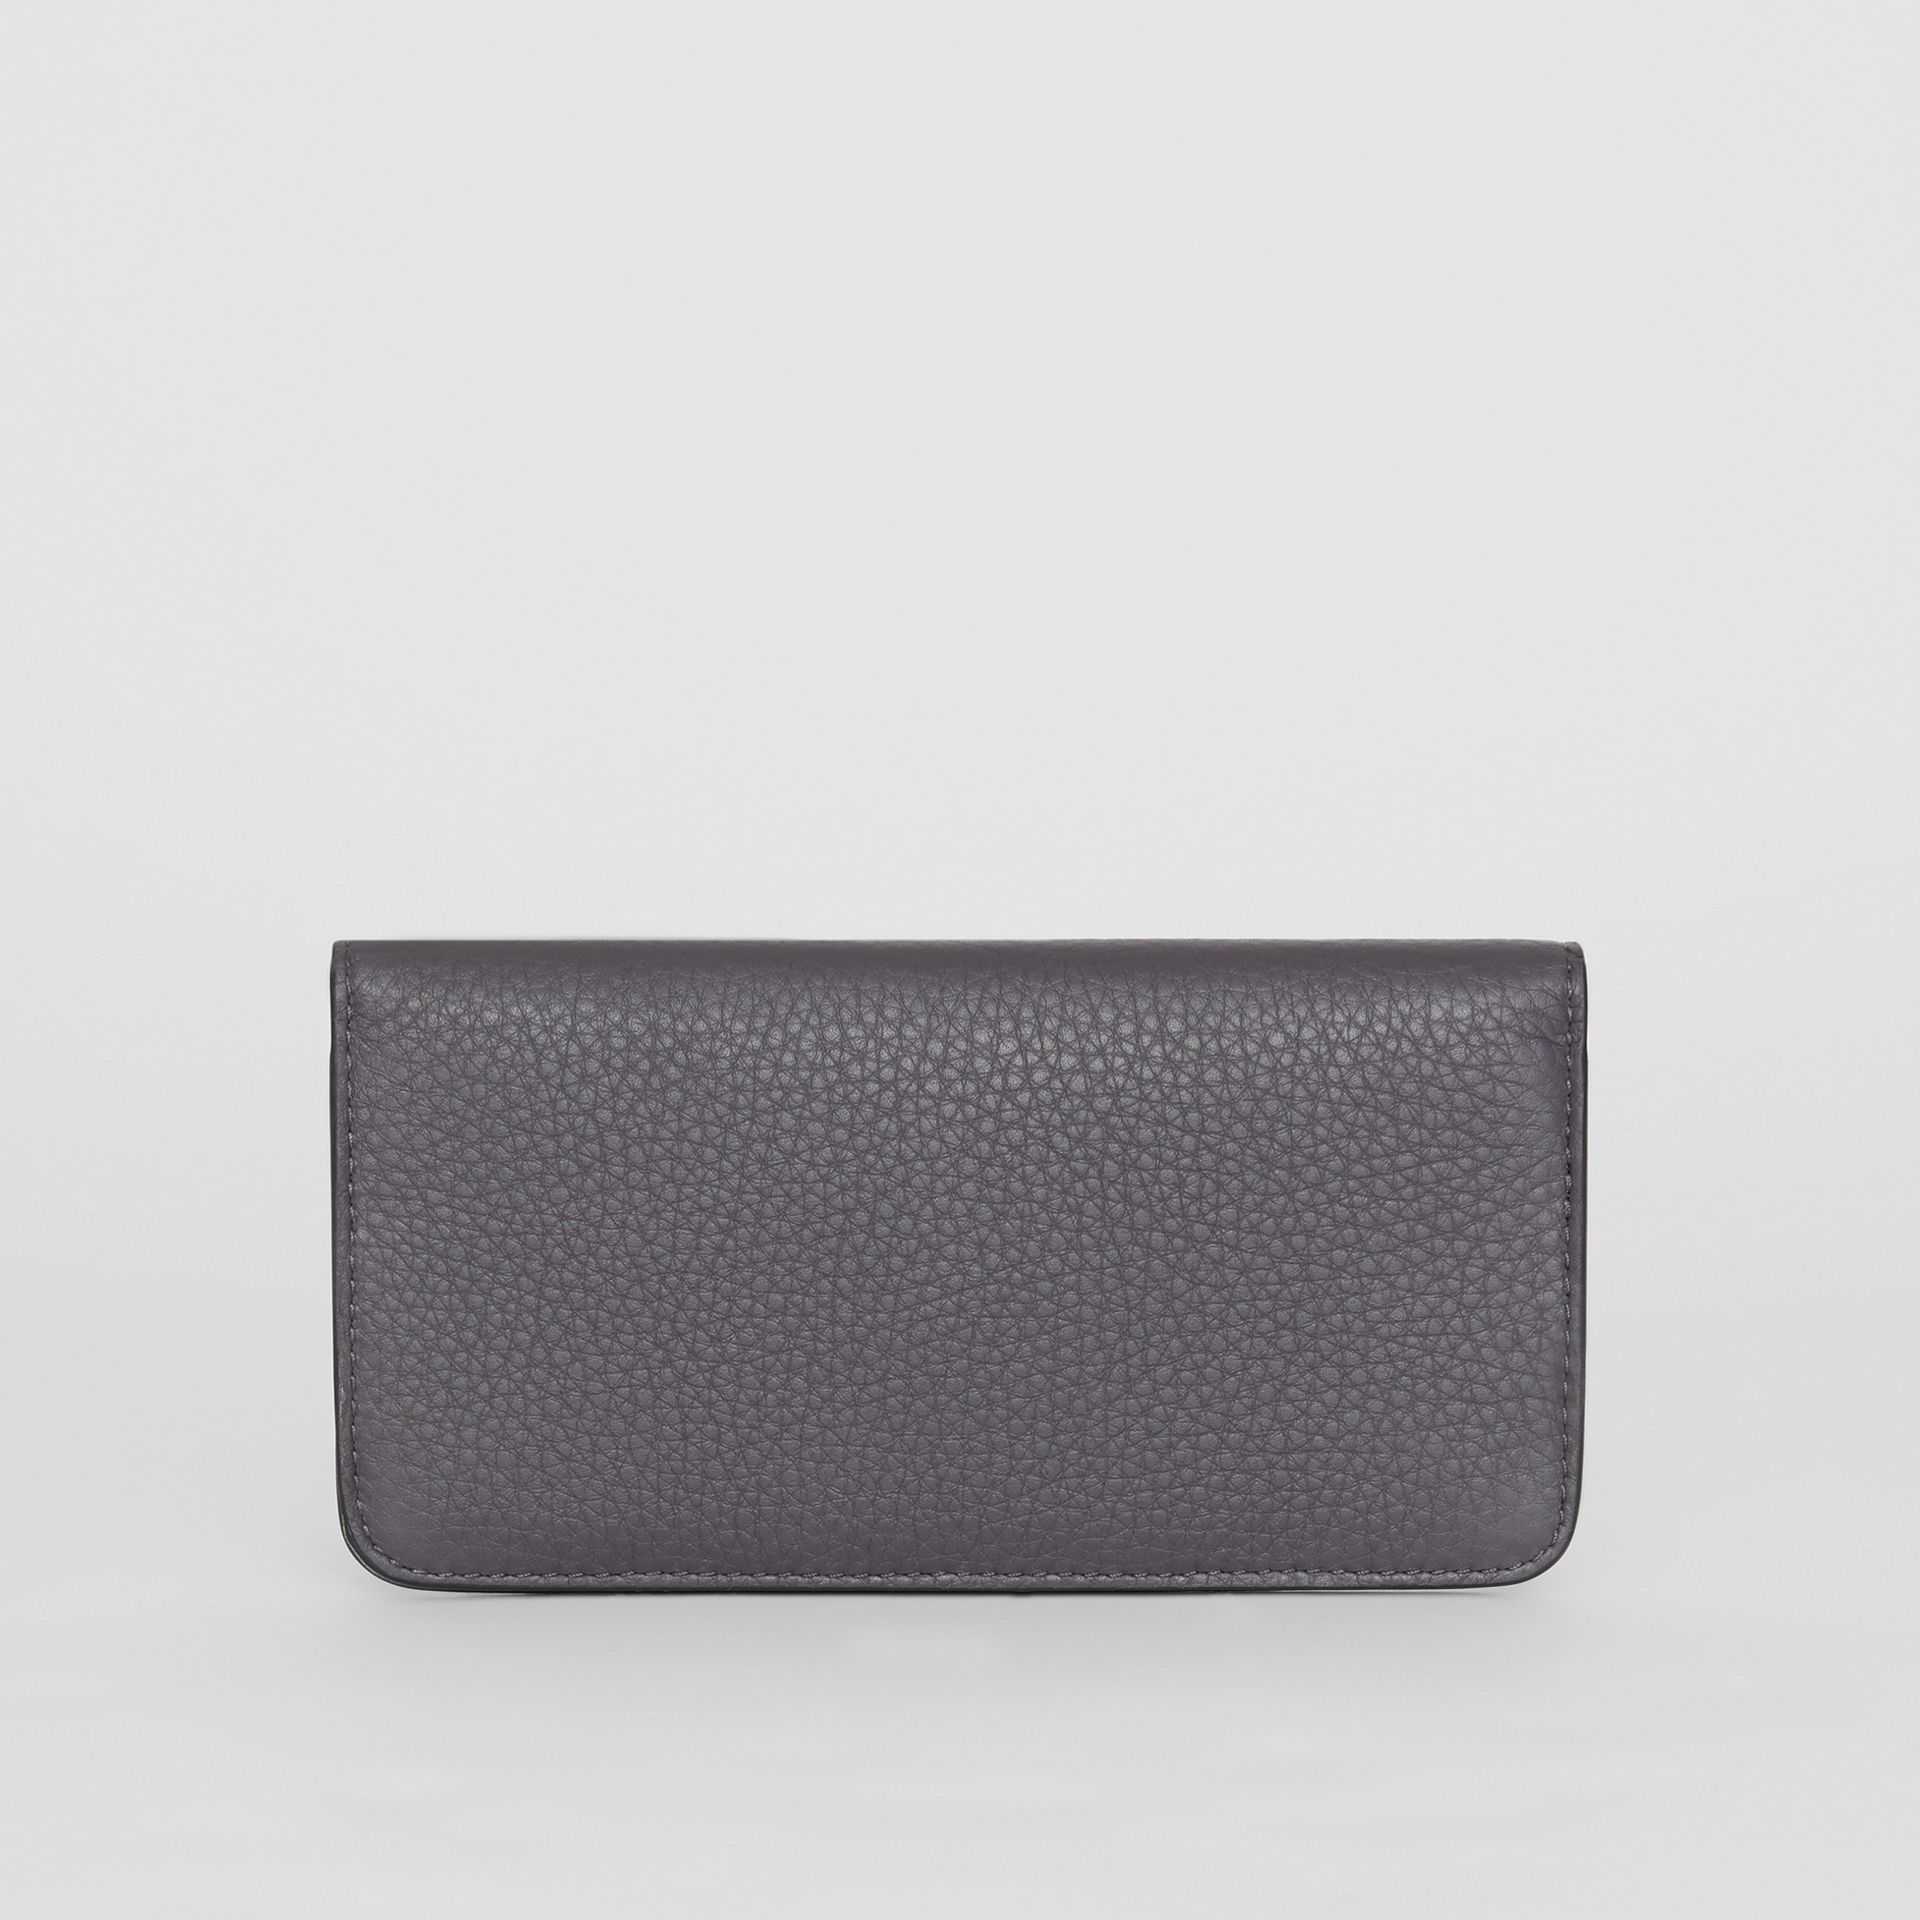 Leather Phone Wallet in Charcoal Grey - Women | Burberry Singapore - gallery image 5